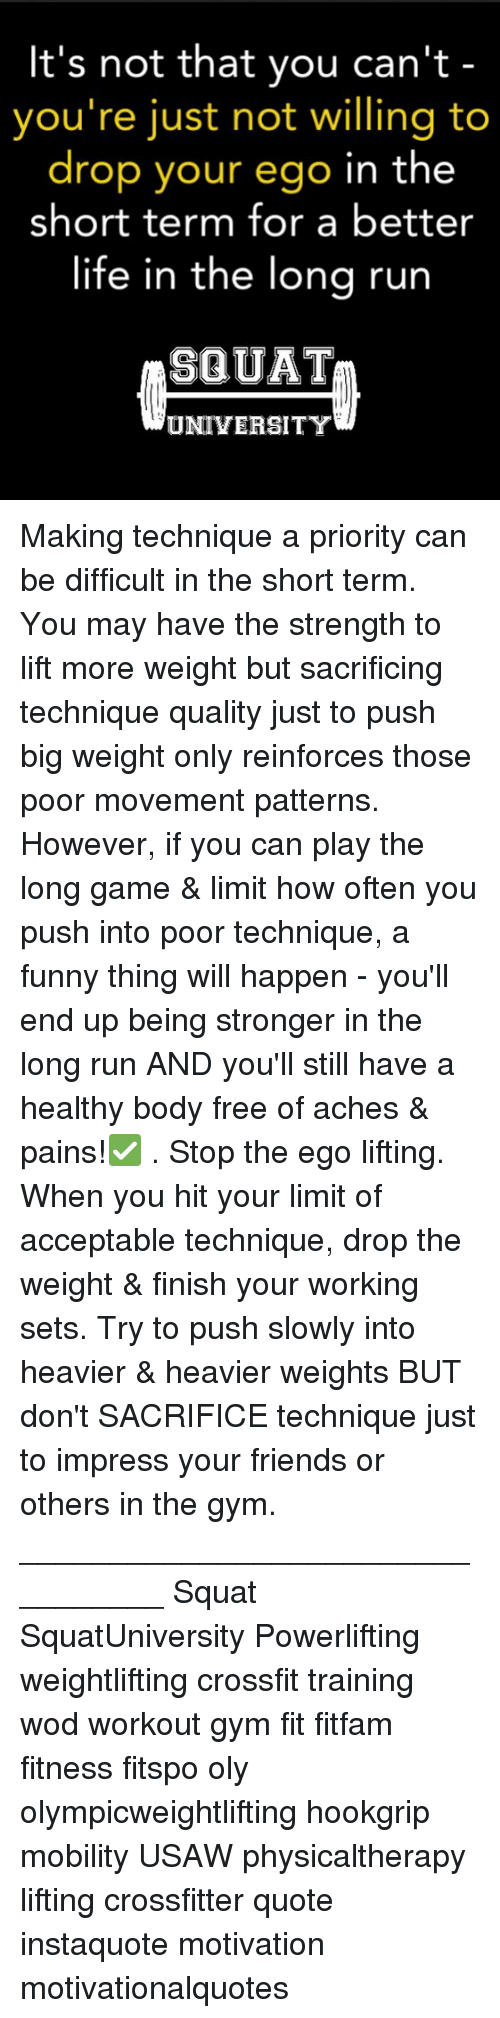 Squating: It's not that you can't  you're just not willing to  drop your ego in the  short term for a better  life in the lona run  SQUAT  UNIVERSITY Making technique a priority can be difficult in the short term. You may have the strength to lift more weight but sacrificing technique quality just to push big weight only reinforces those poor movement patterns. However, if you can play the long game & limit how often you push into poor technique, a funny thing will happen - you'll end up being stronger in the long run AND you'll still have a healthy body free of aches & pains!✅ . Stop the ego lifting. When you hit your limit of acceptable technique, drop the weight & finish your working sets. Try to push slowly into heavier & heavier weights BUT don't SACRIFICE technique just to impress your friends or others in the gym. _________________________________ Squat SquatUniversity Powerlifting weightlifting crossfit training wod workout gym fit fitfam fitness fitspo oly olympicweightlifting hookgrip mobility USAW physicaltherapy lifting crossfitter quote instaquote motivation motivationalquotes